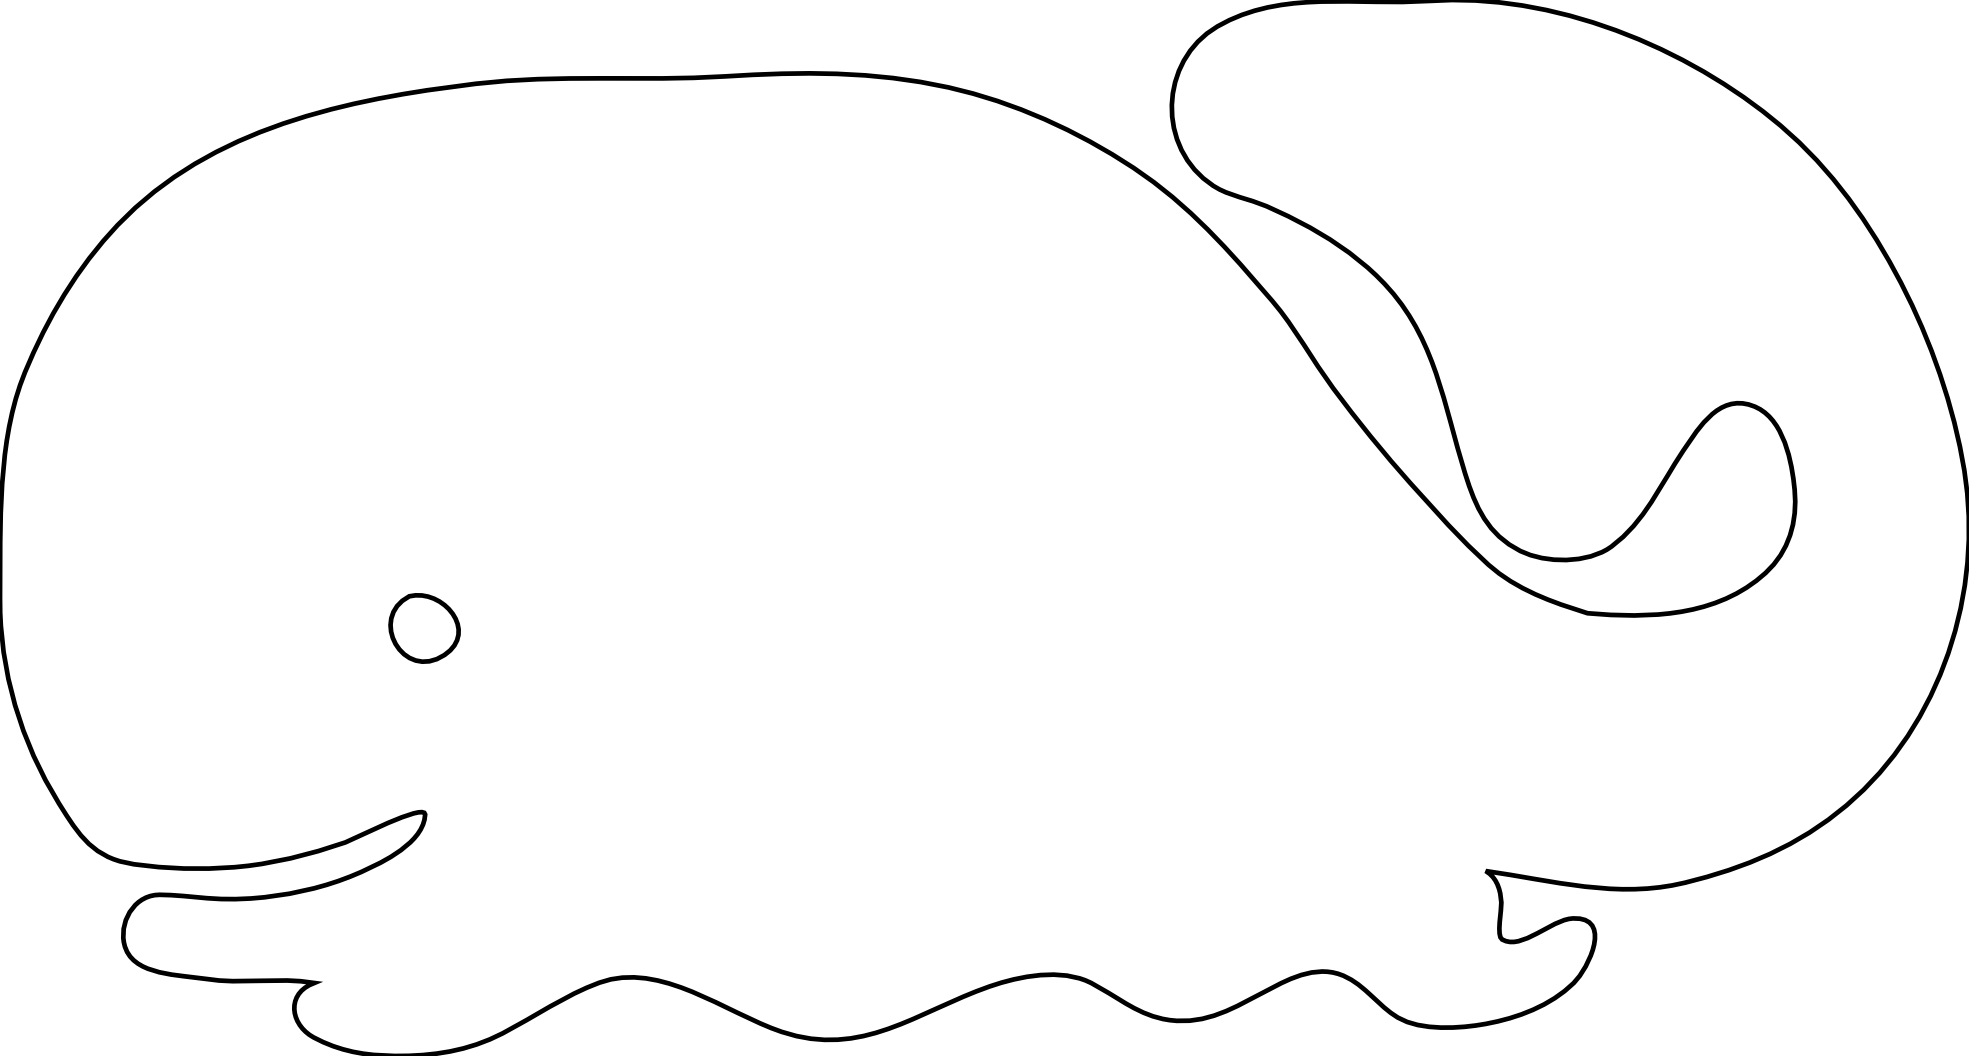 Line Art Vector Design Png : Whale icon black white line art scalable vector graphics